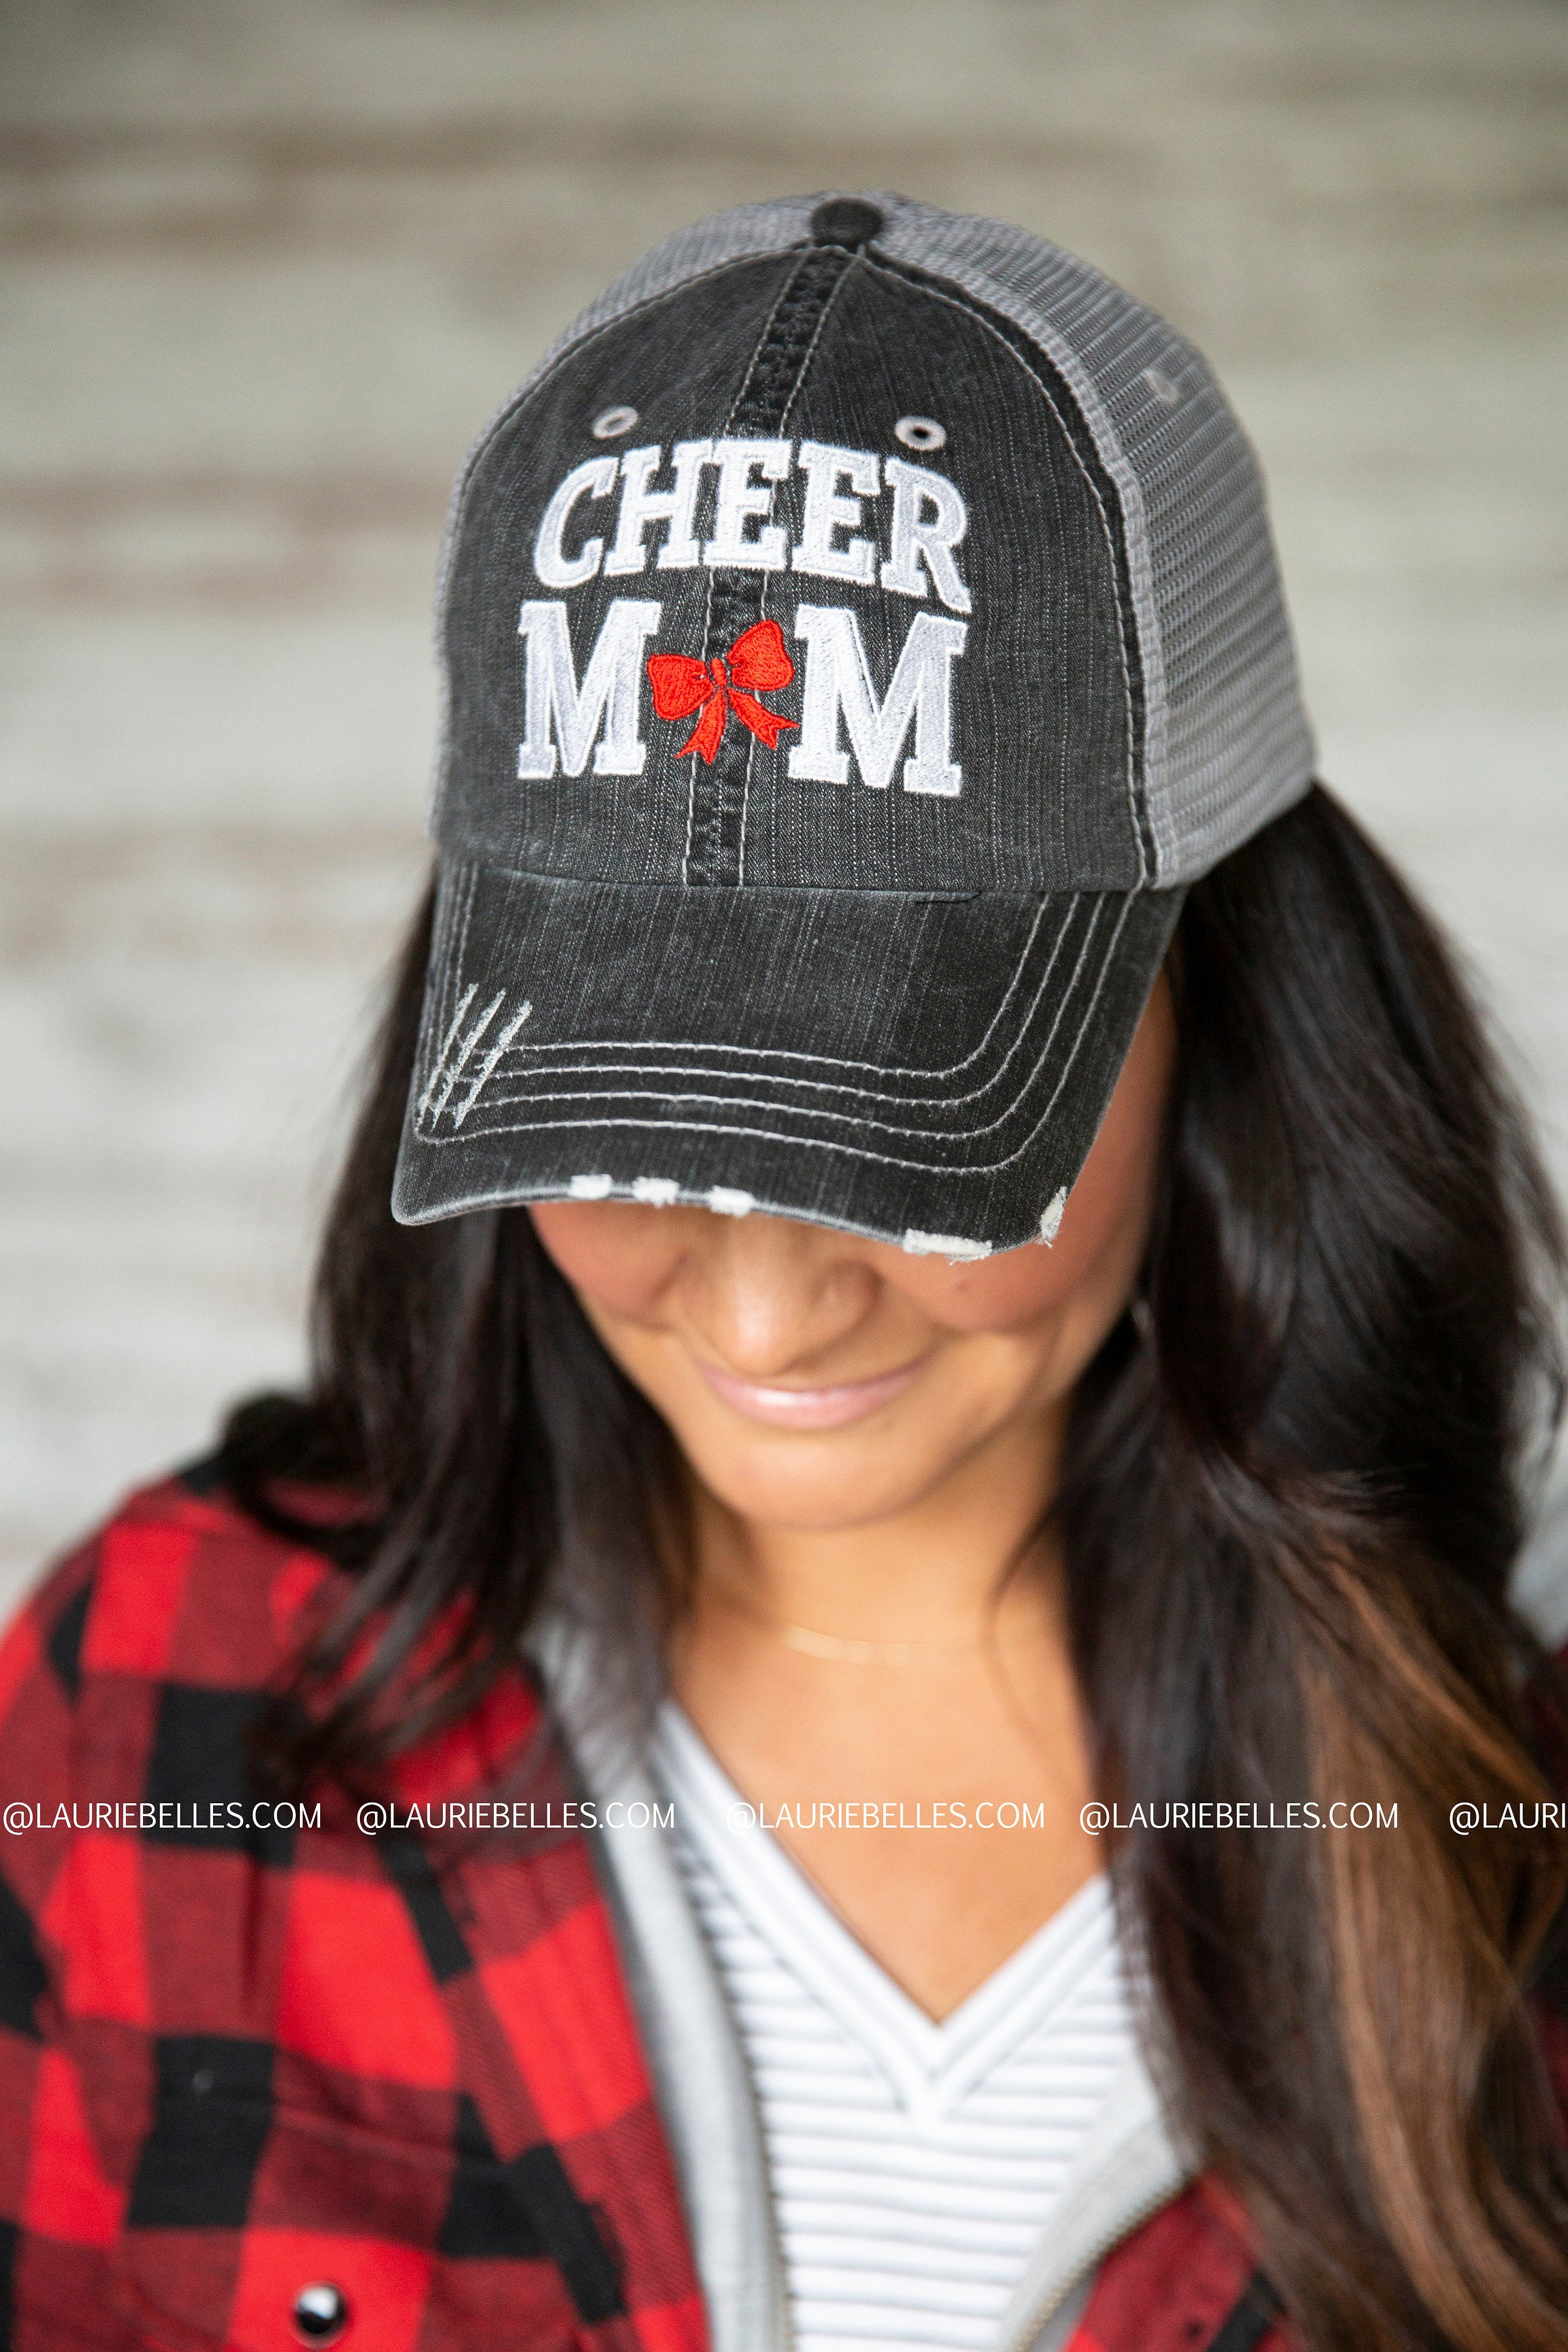 c8afbe95a7f40 Cheer Mom